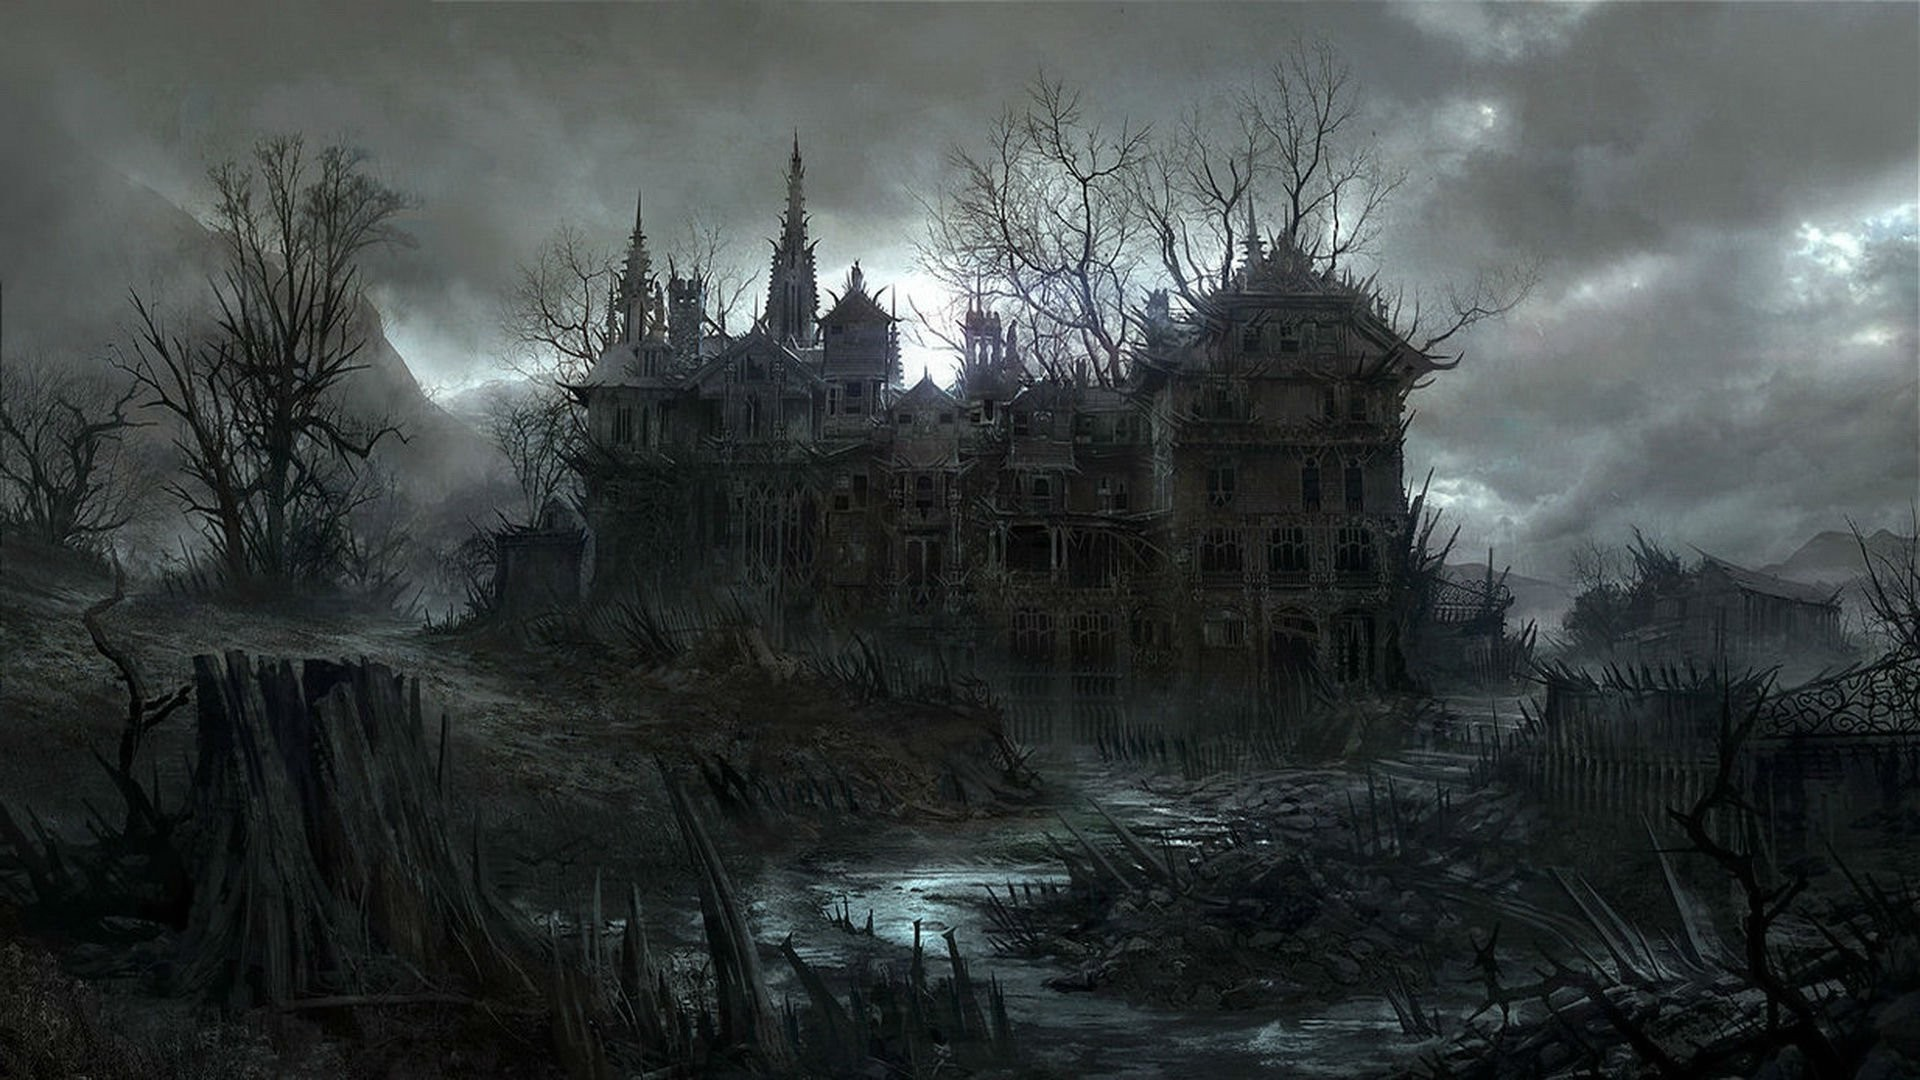 Spooky wallpaper ·① Download free amazing High Resolution ...